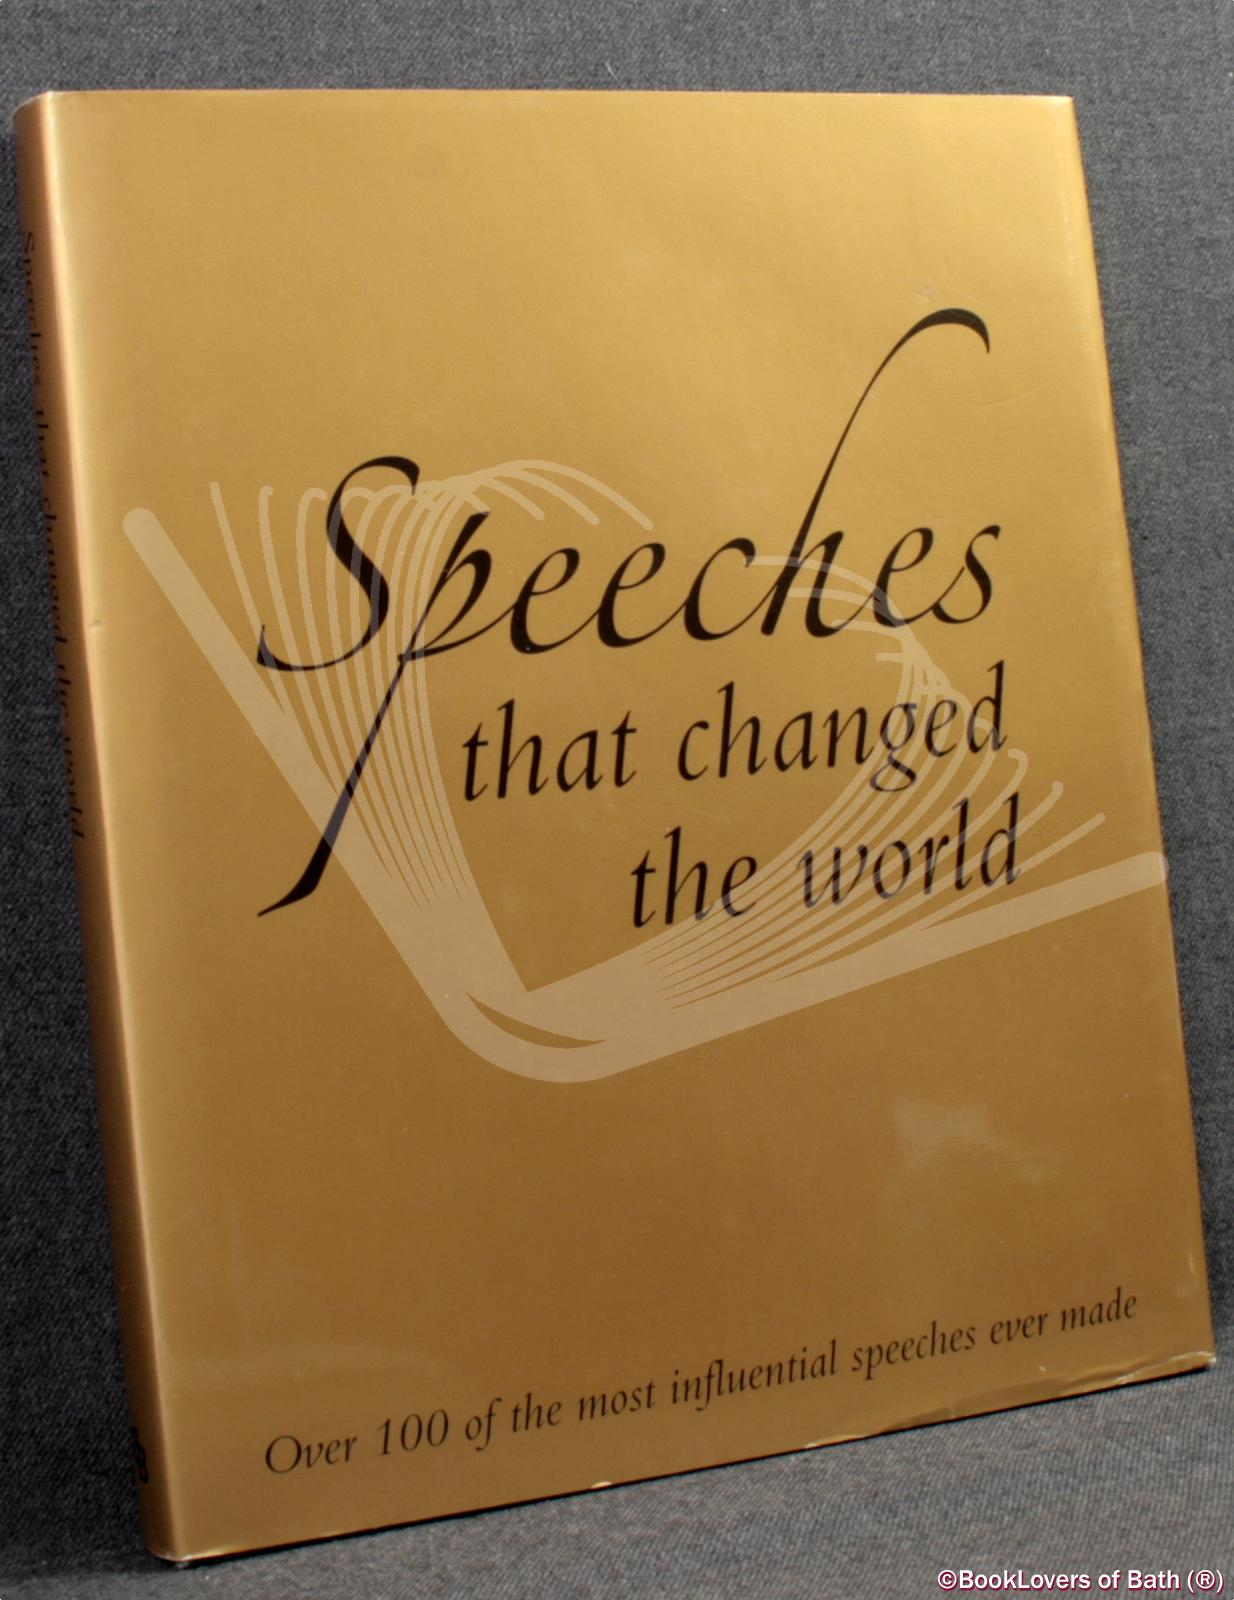 Speeches that Changed the World - Compiled by Cathy Lowne